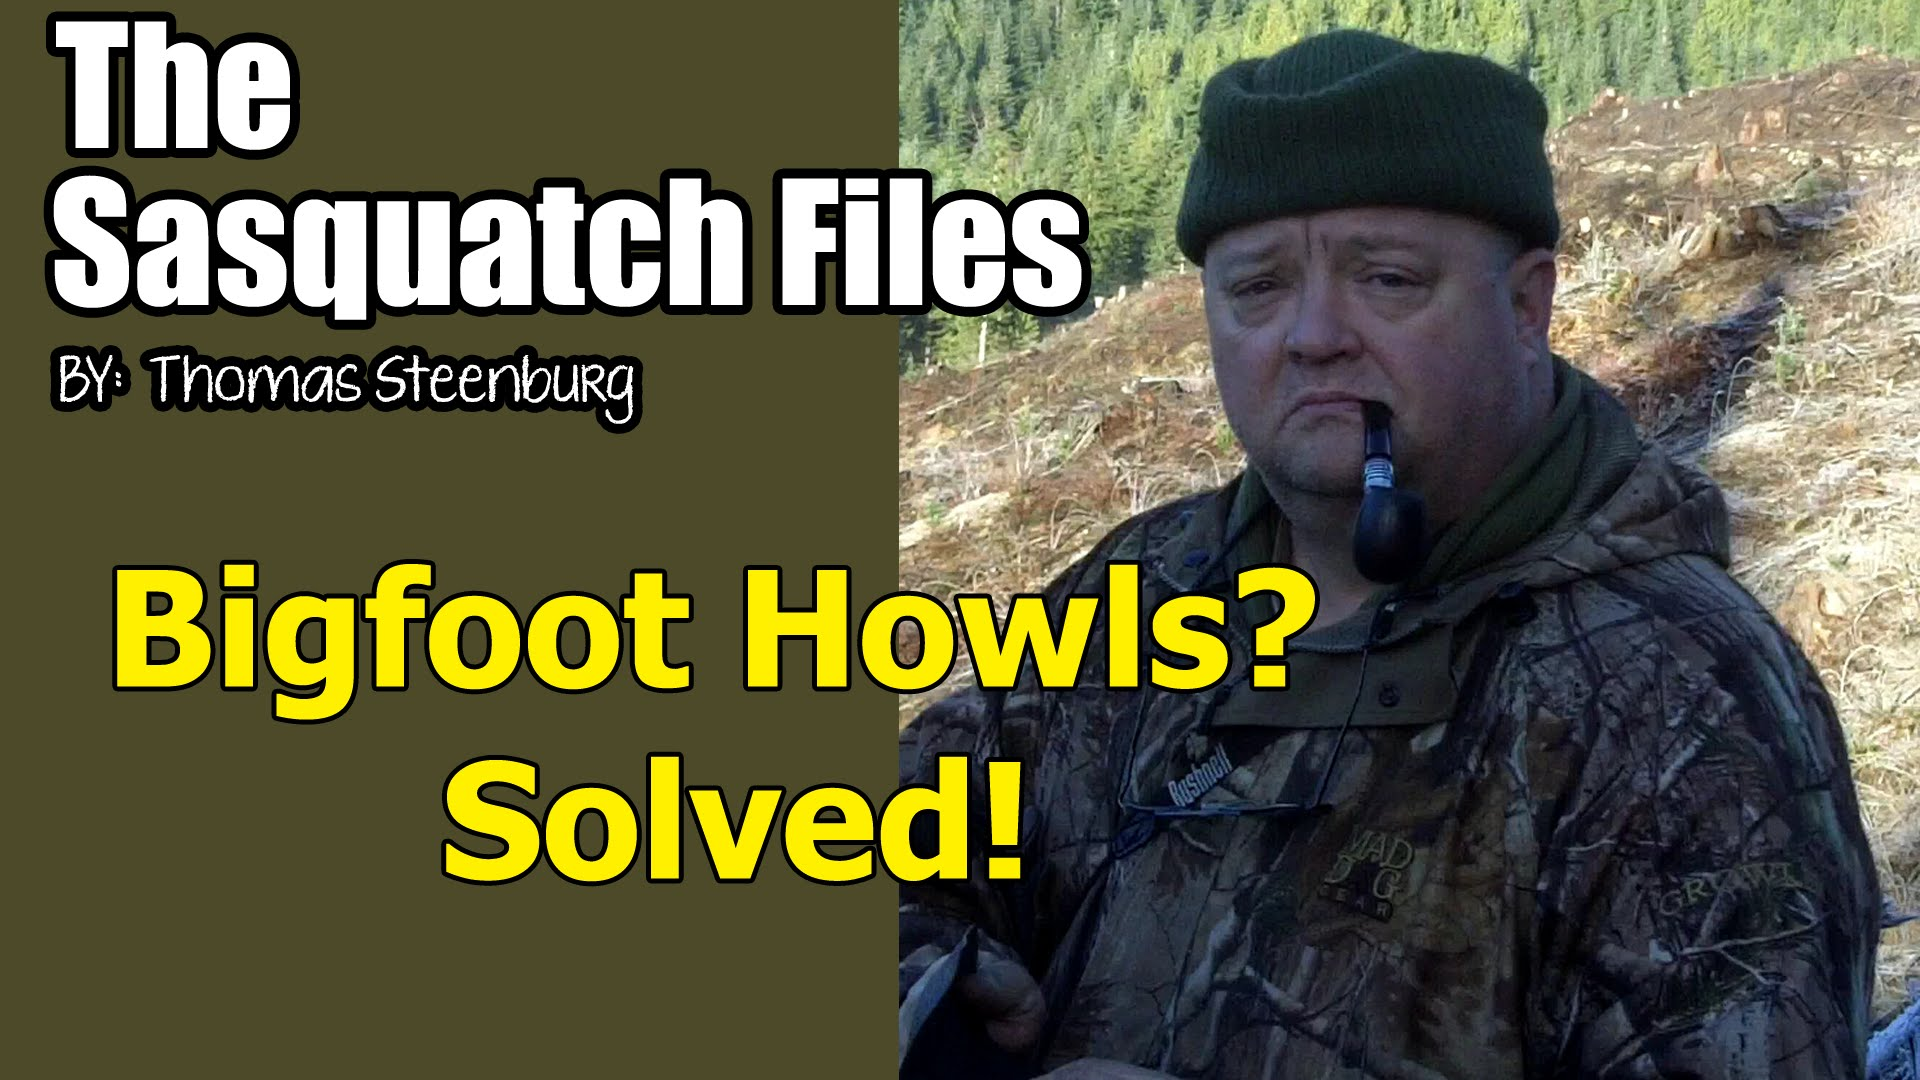 tsf-mysterious-bigfoot-howls-sol